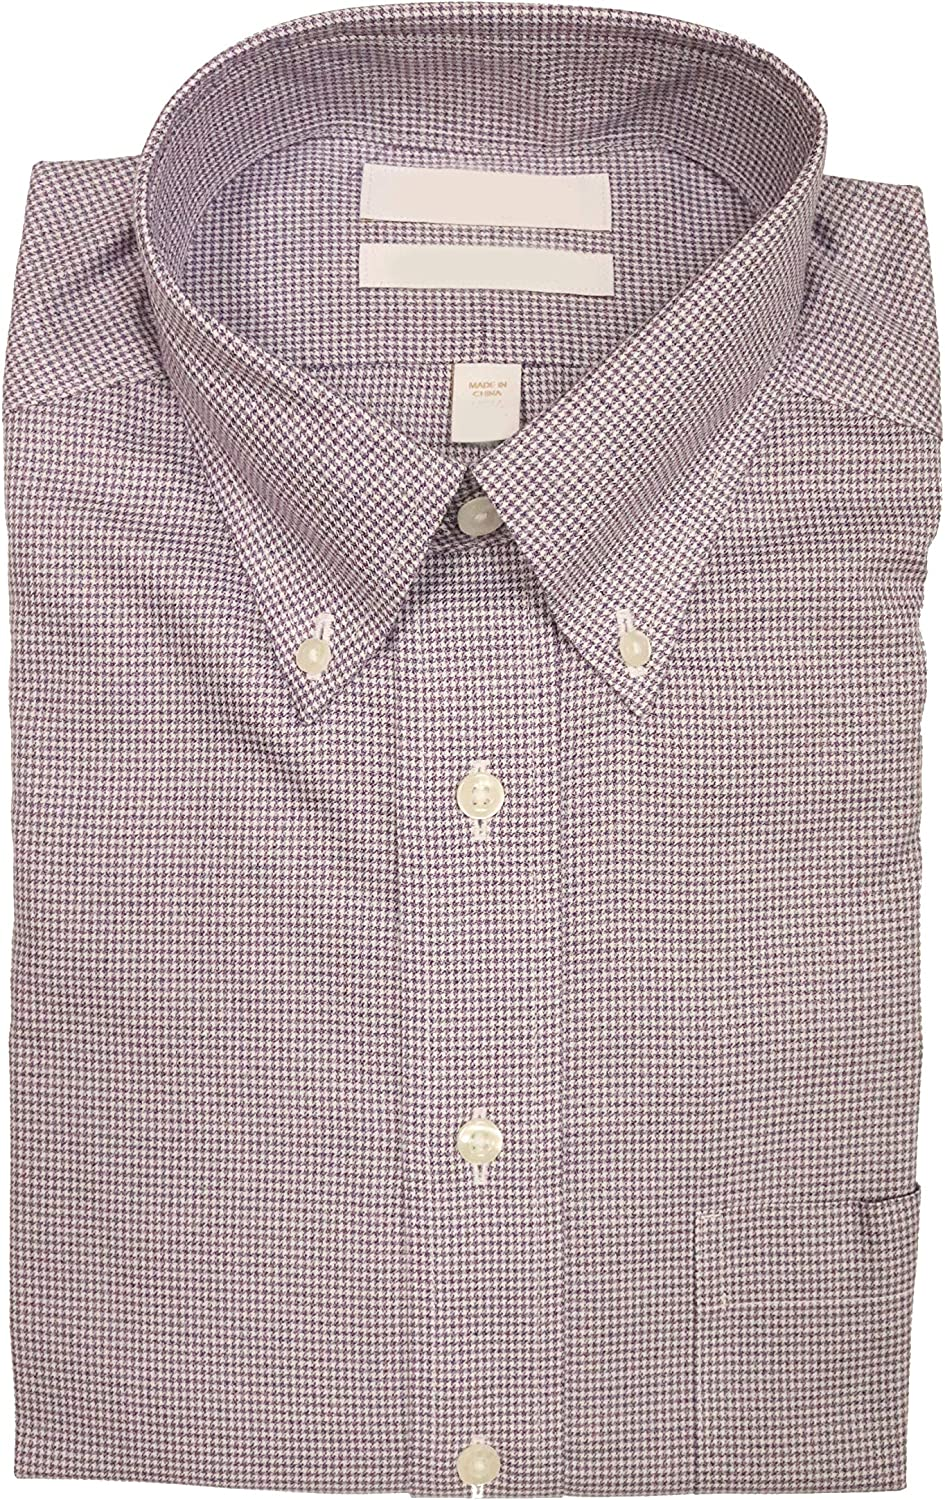 Gold Label Roundtree & Yorke Non-Iron Fitted Classic-Fit Button-Down Collar Plaid Dress Shirt F65DG114